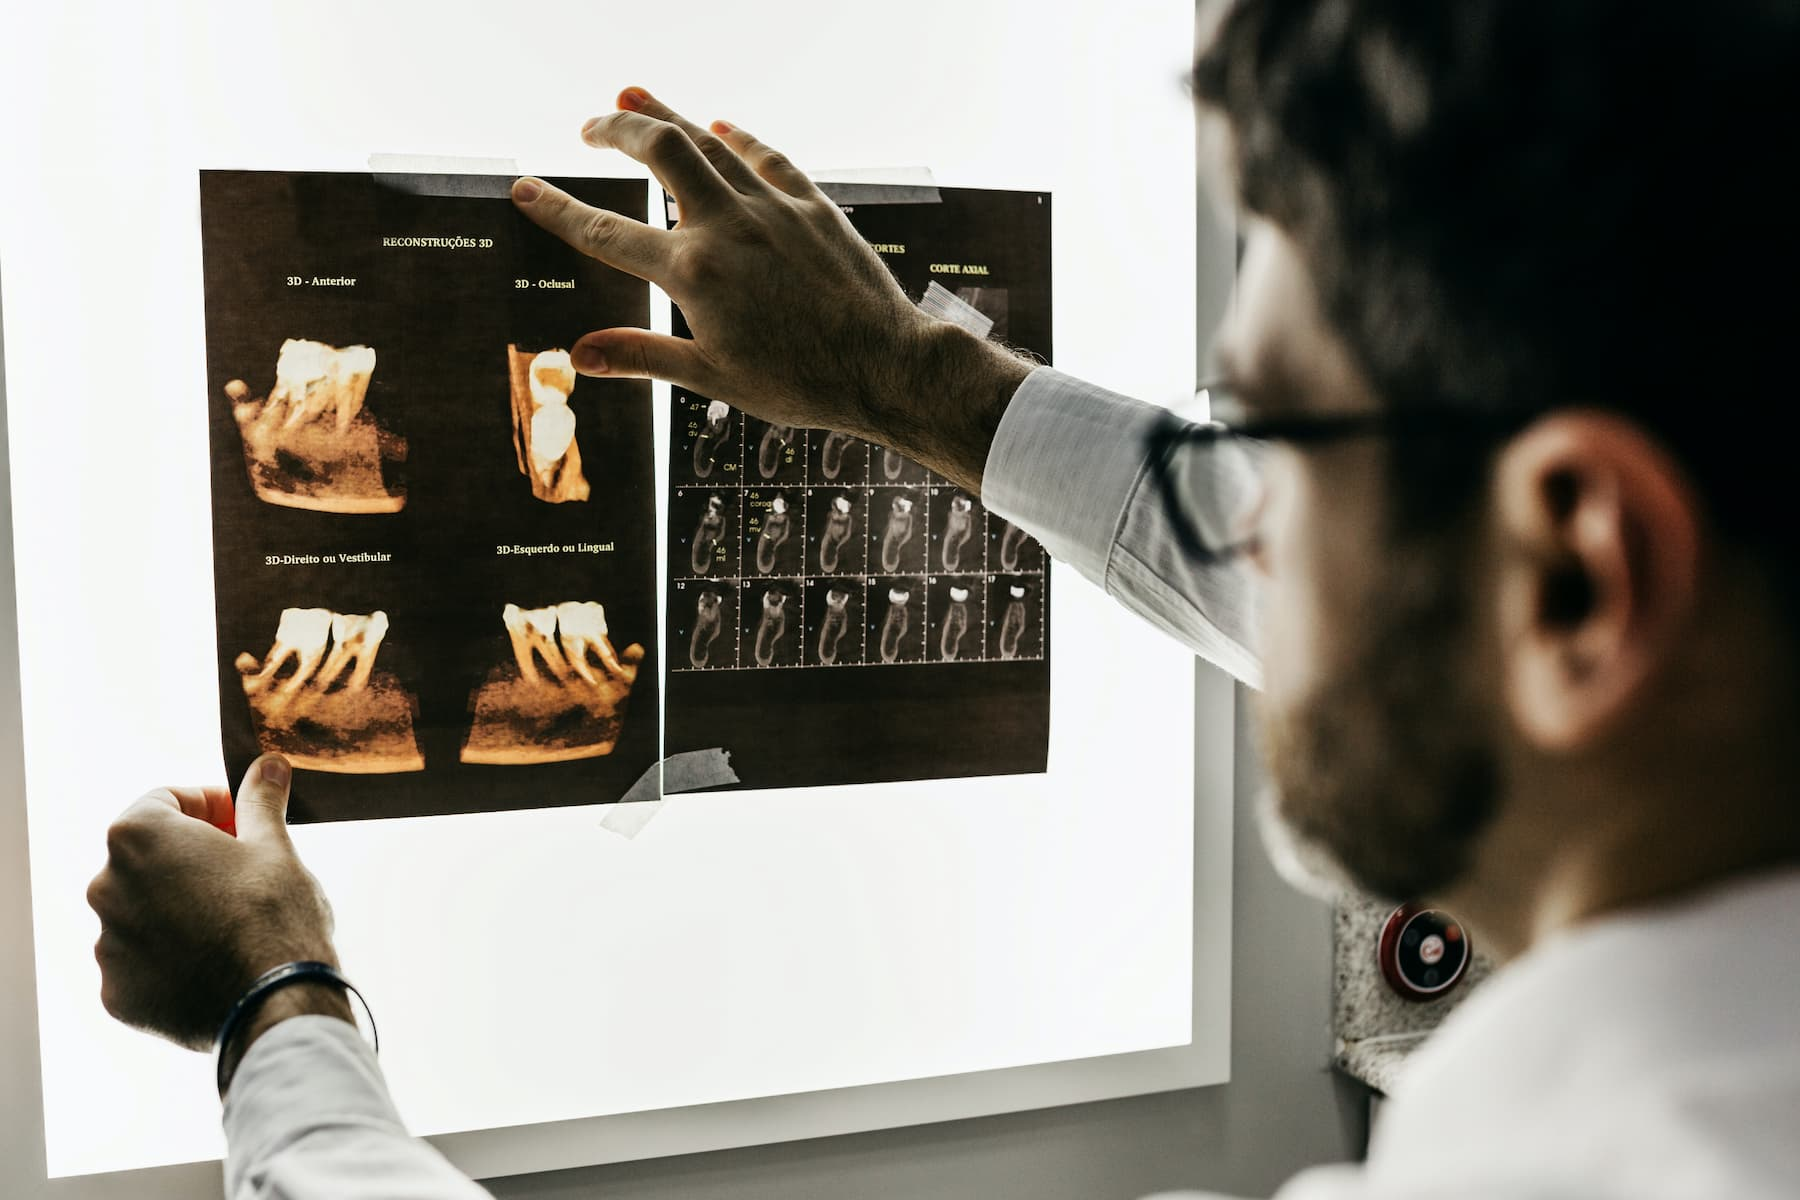 Doctor with medical scan results from personal injury case